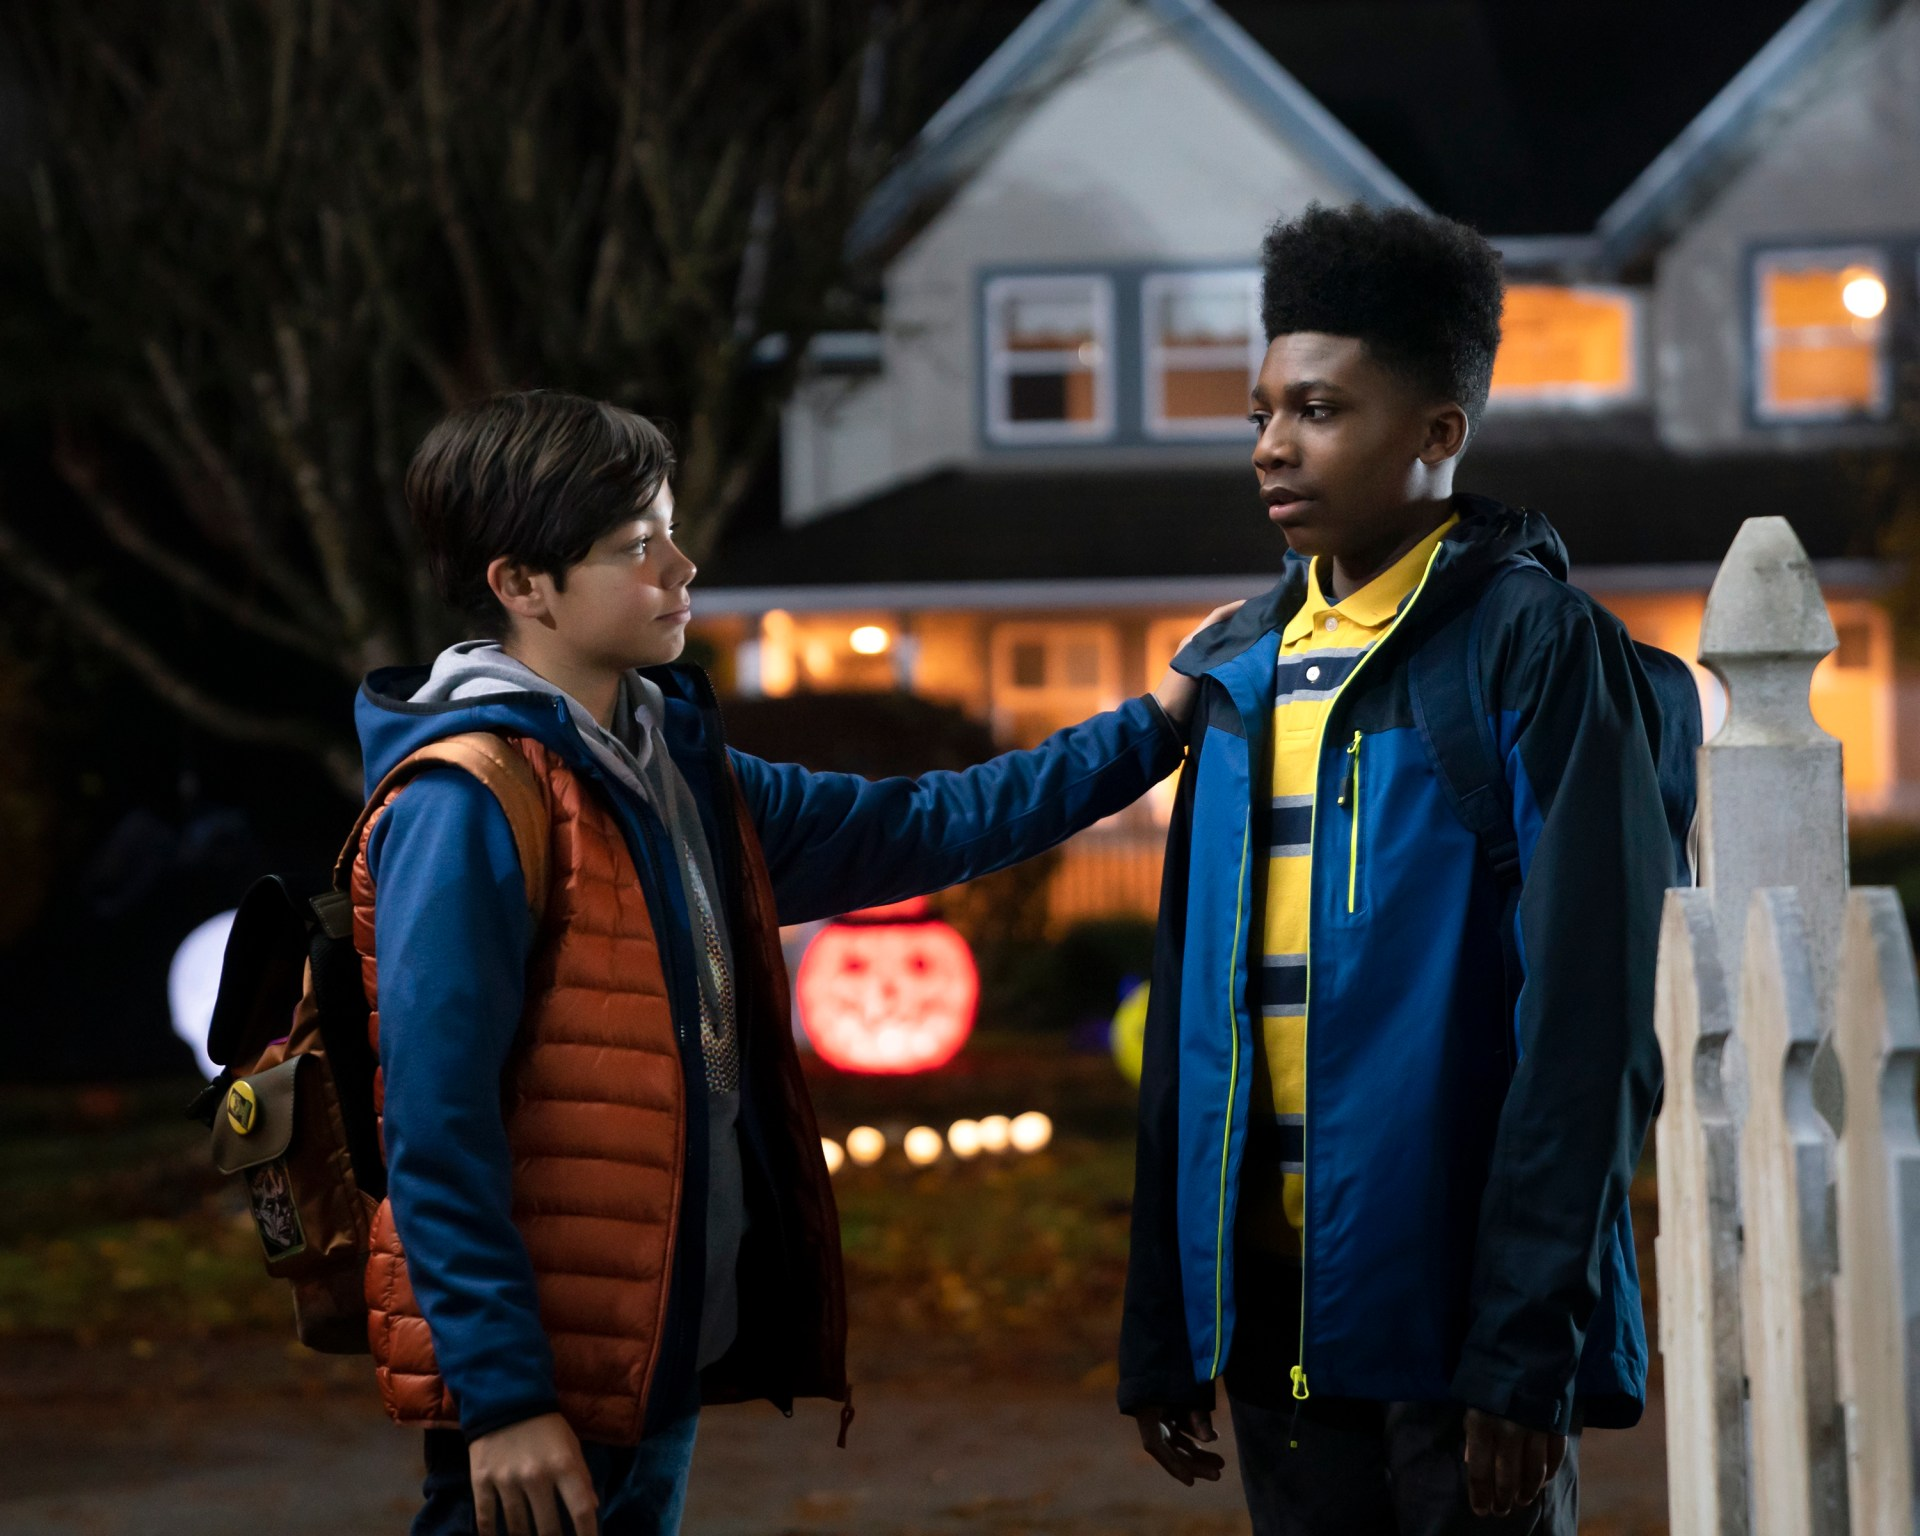 """Christian J Simon, wearing a yellow and blue striped shirt, dark blue jacket, and backpack stands next to co-star Malachi Barton in front of a house decorated for Halloween in this still from """"Under Wraps."""""""